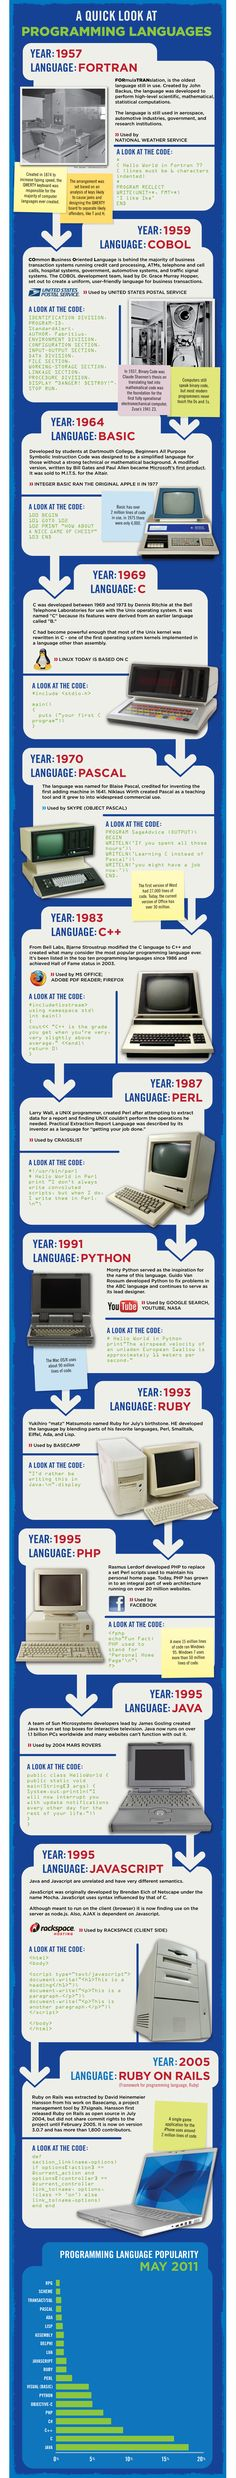 Evolution of Computer Languages